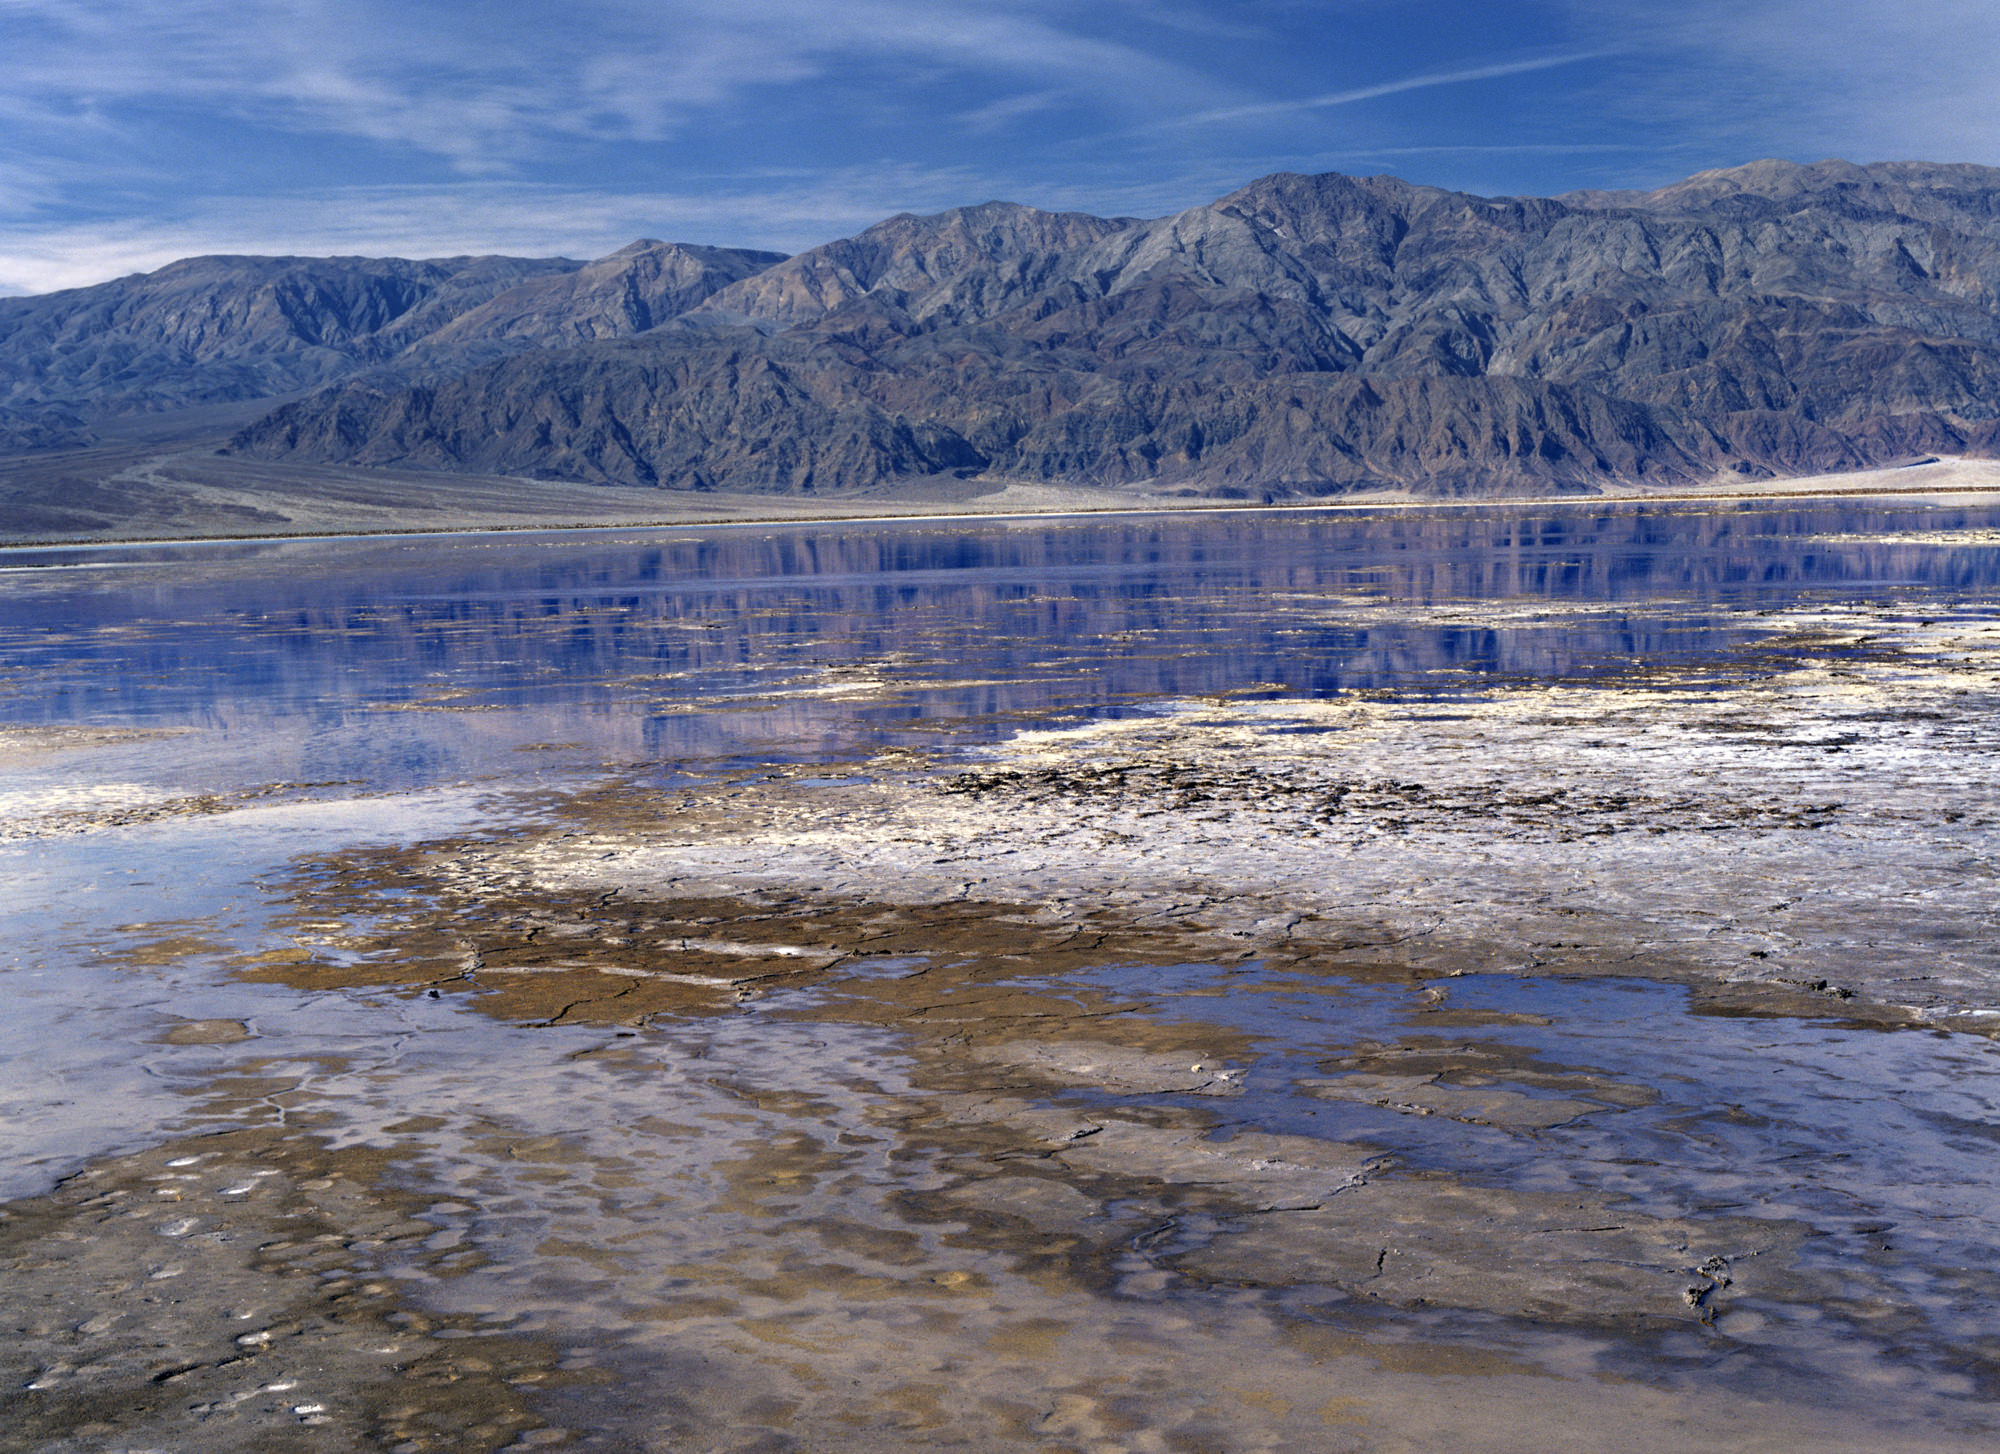 The water-logged playa near Badwater shot in the winter. A rare sight.